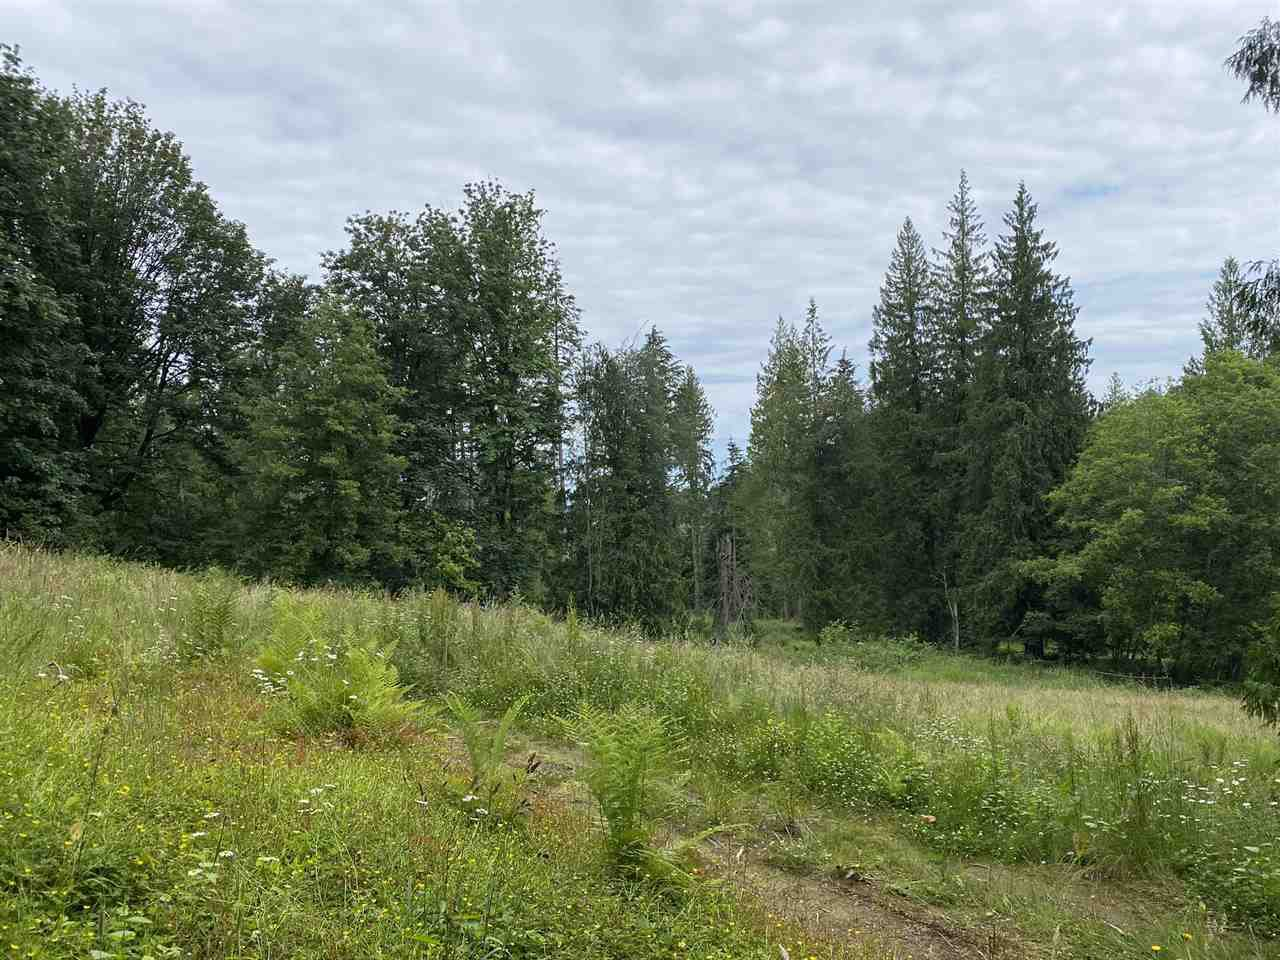 Main Photo: 5673 EXTROM Road in Chilliwack: Ryder Lake Land for sale (Sardis)  : MLS®# R2472600